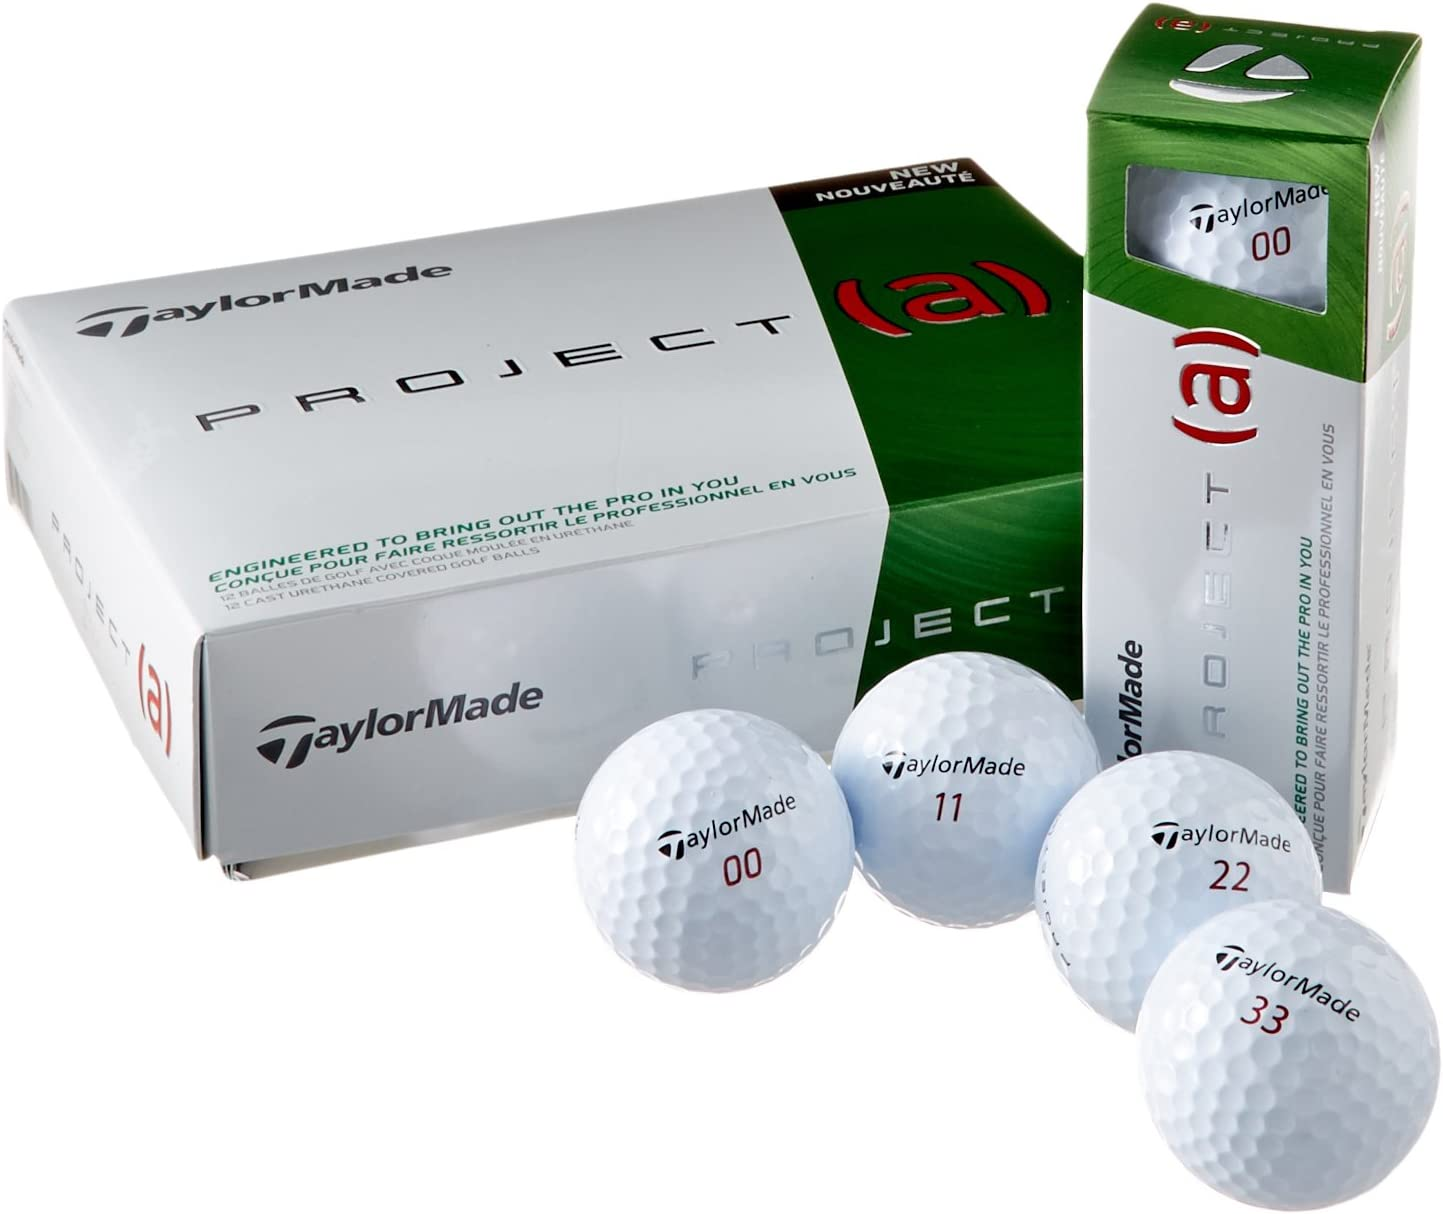 TaylorMade 2014 Project (a) Golf Balls - White